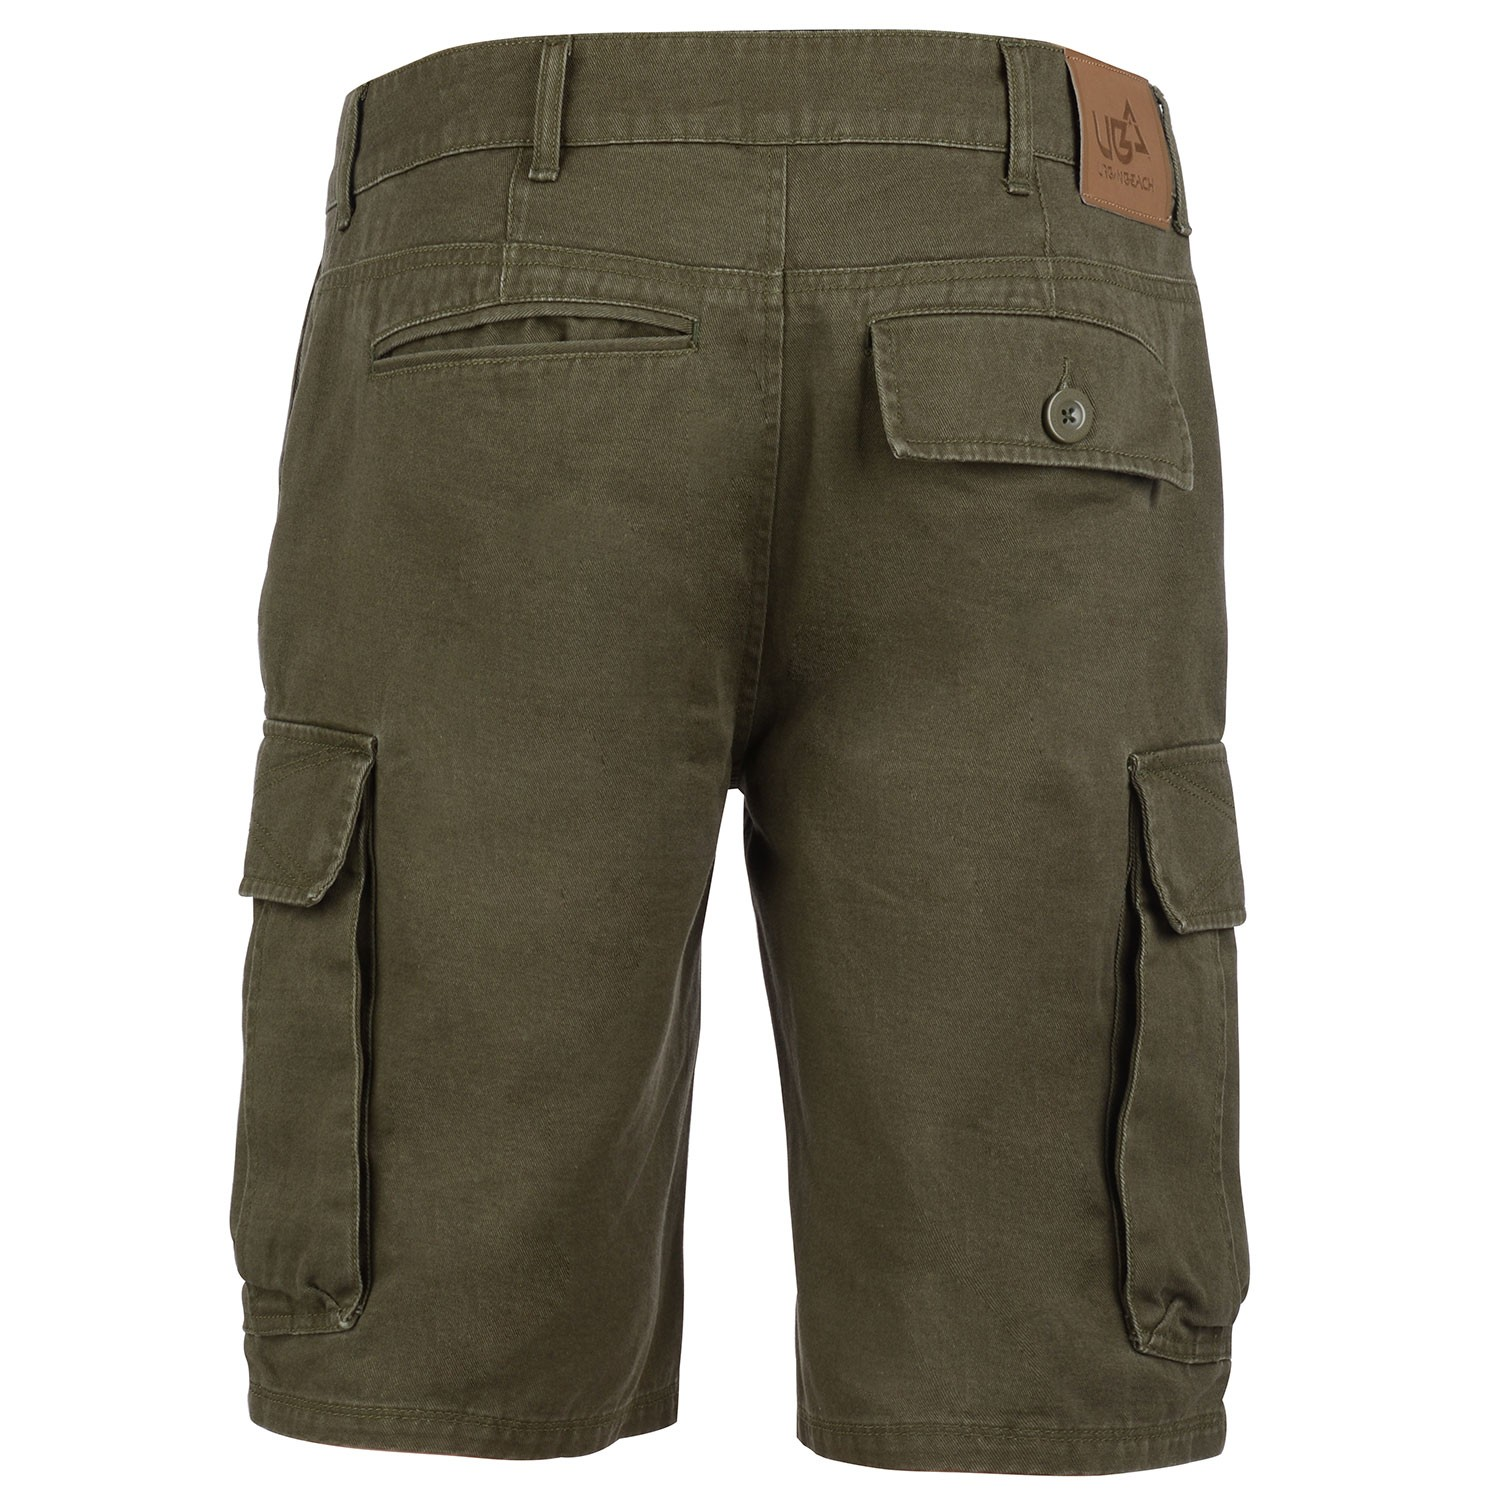 Khaki shorts for men are made from the finest, breathable cotton that guarantee comfort all day long. The machine washable feature means easy clean up. Go traditional flat-front or cargo.